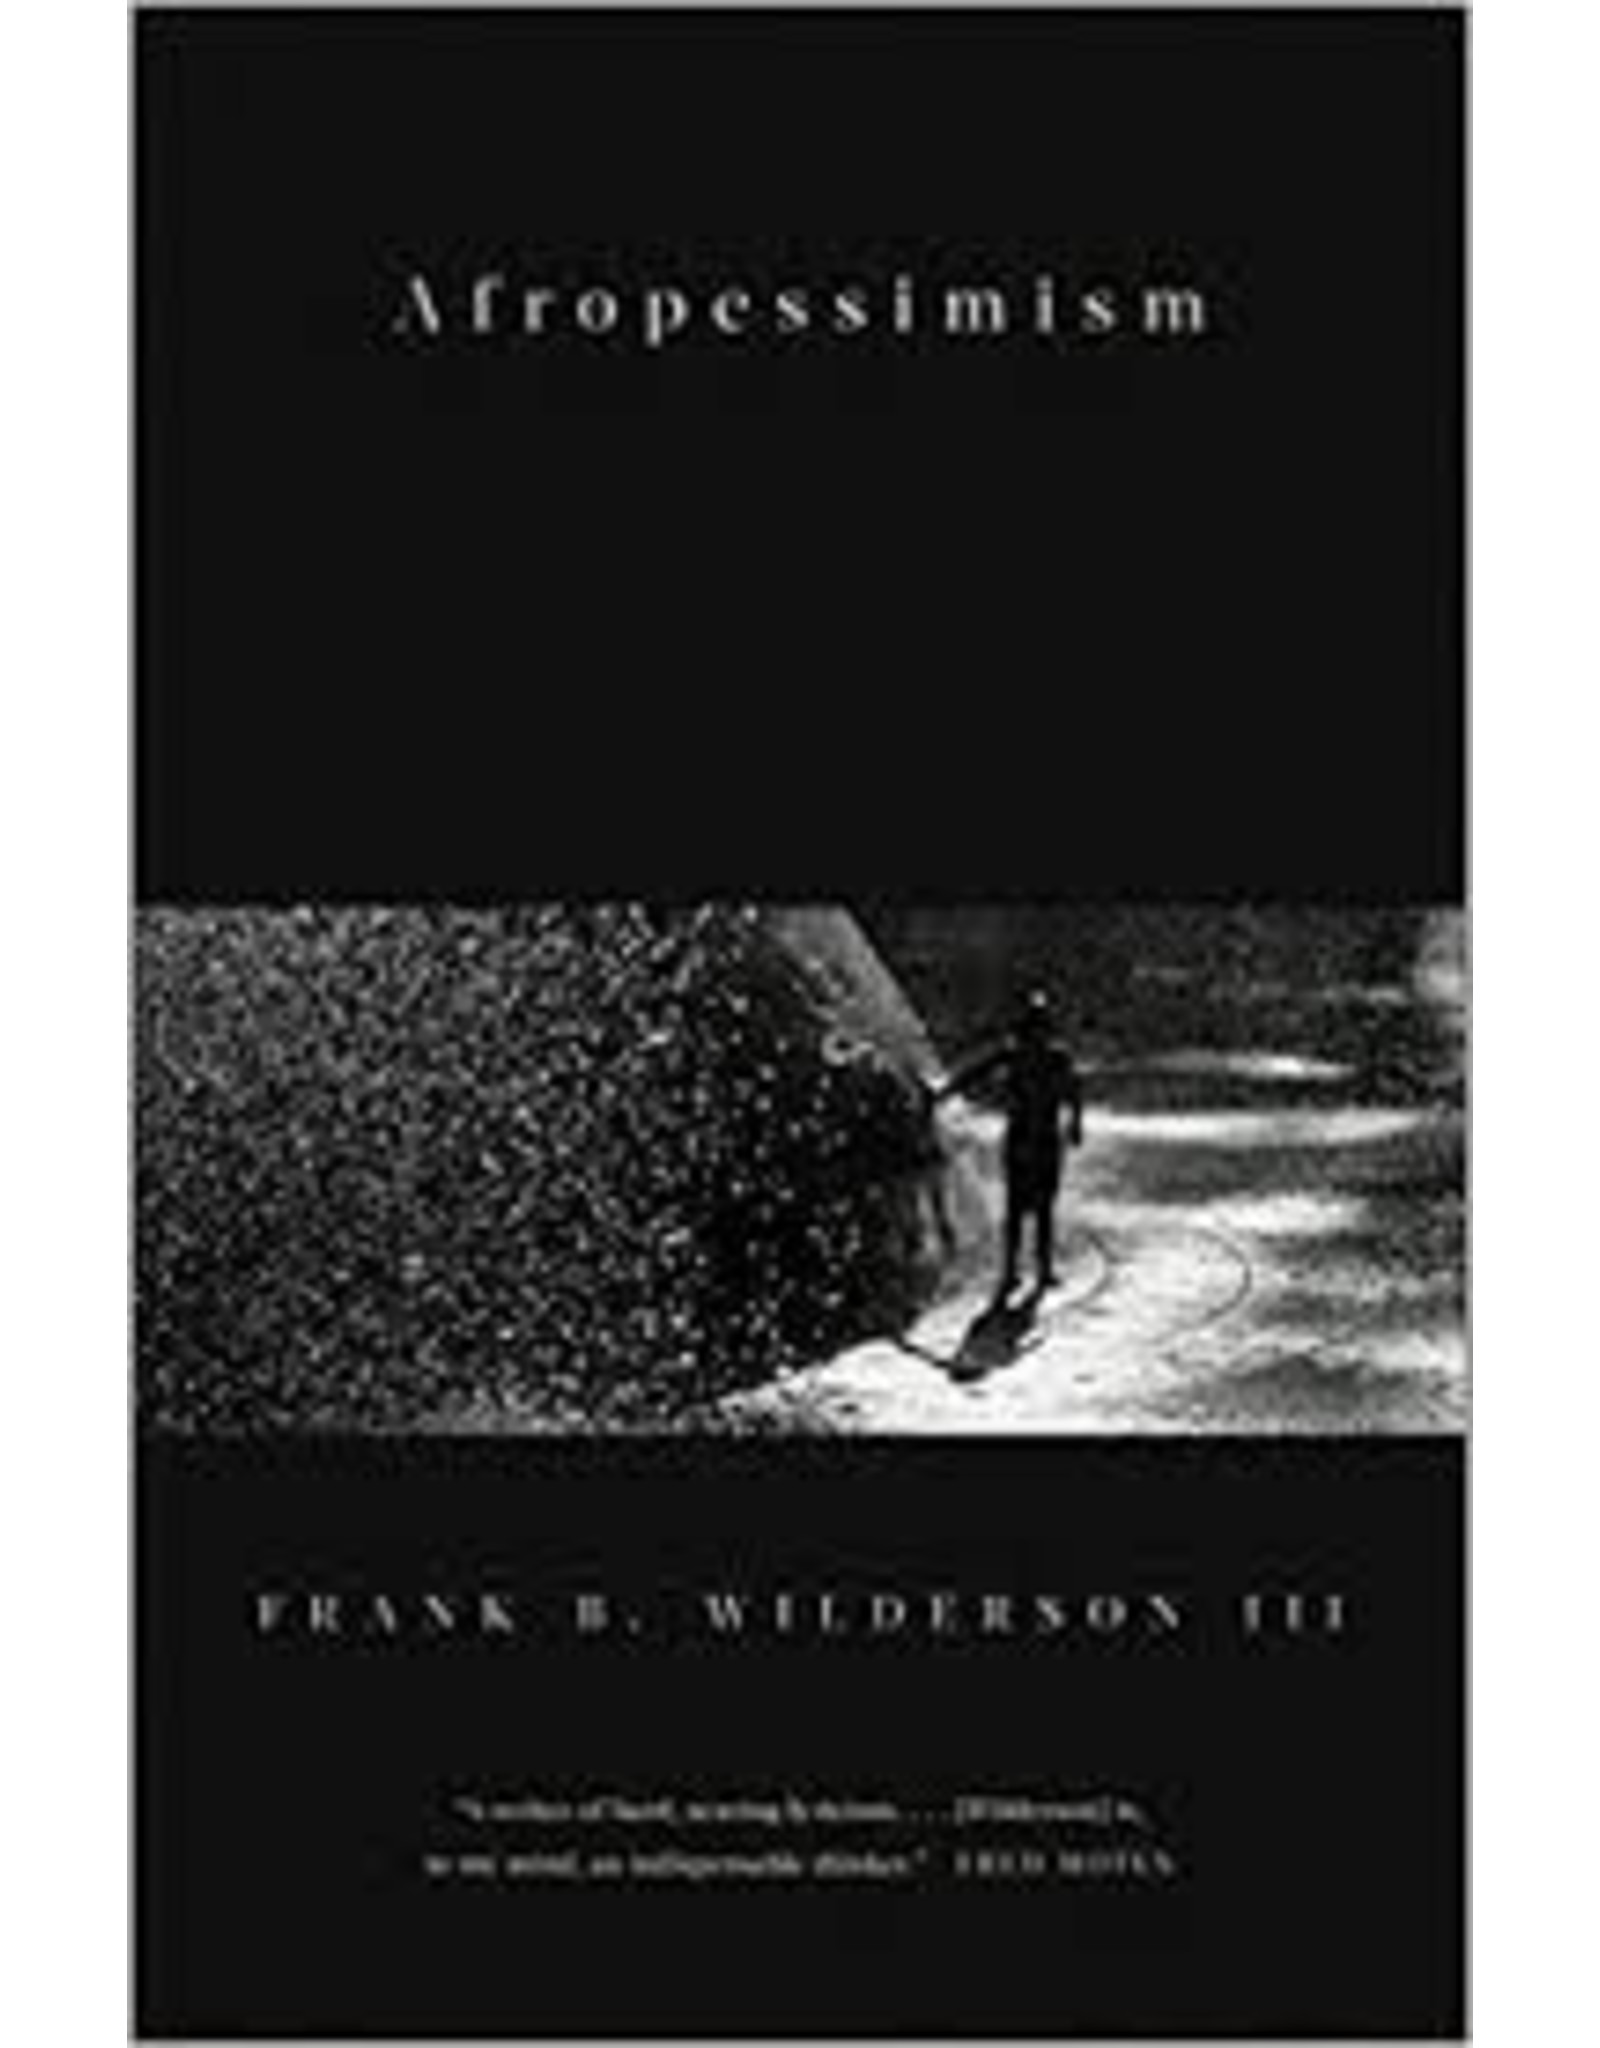 Books Afropessimism by Frank B. Wilderson III (Holiday Catalog)